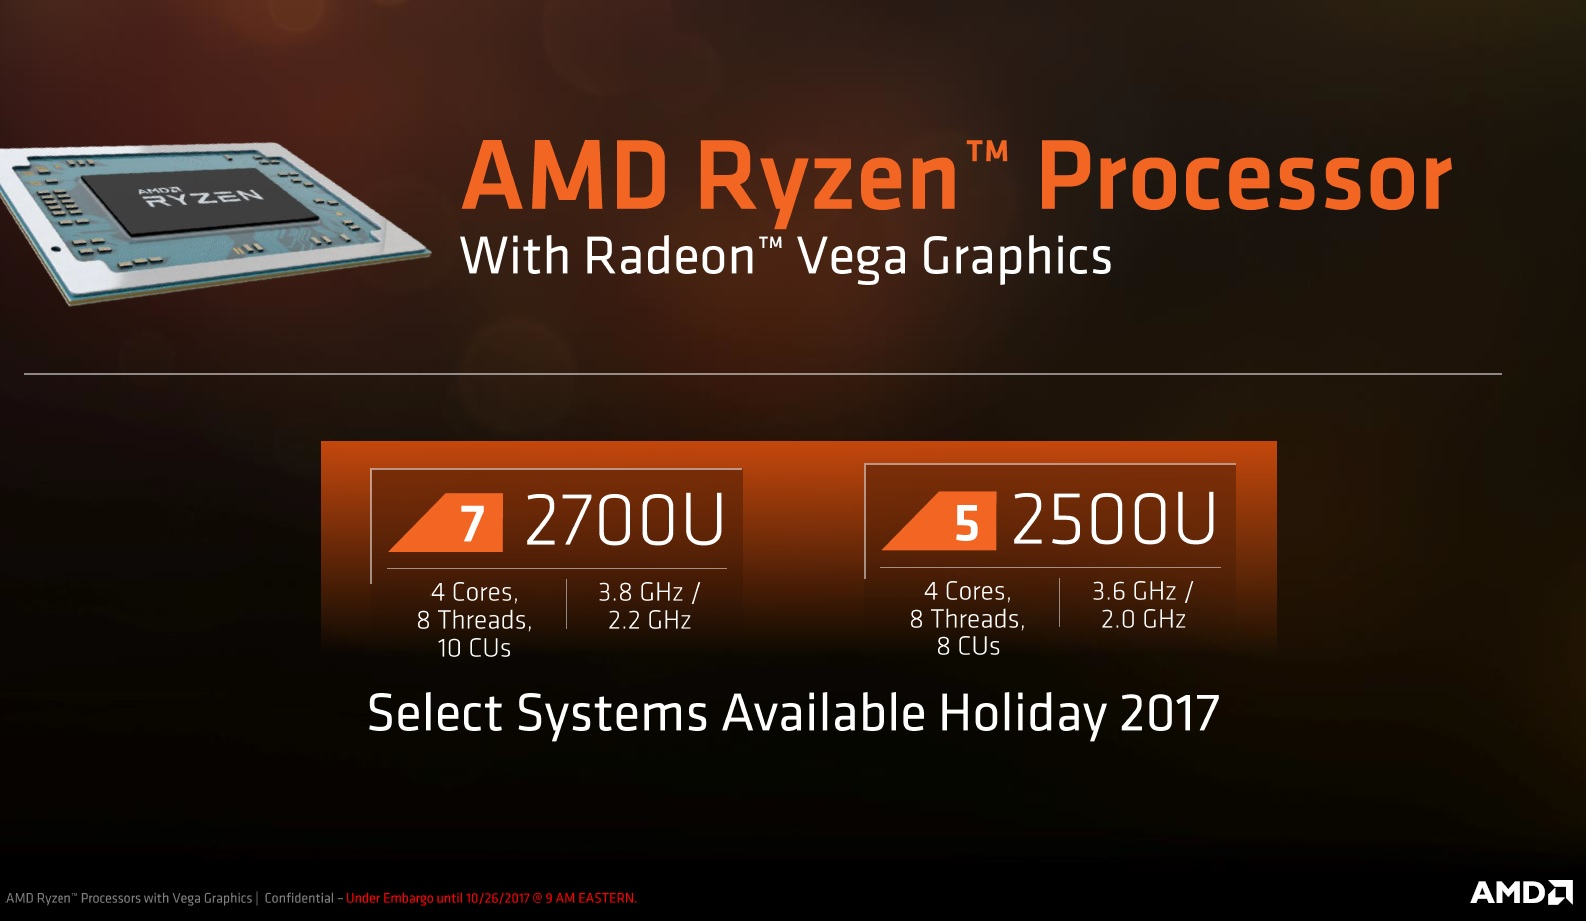 AMD Ryzen with Vega